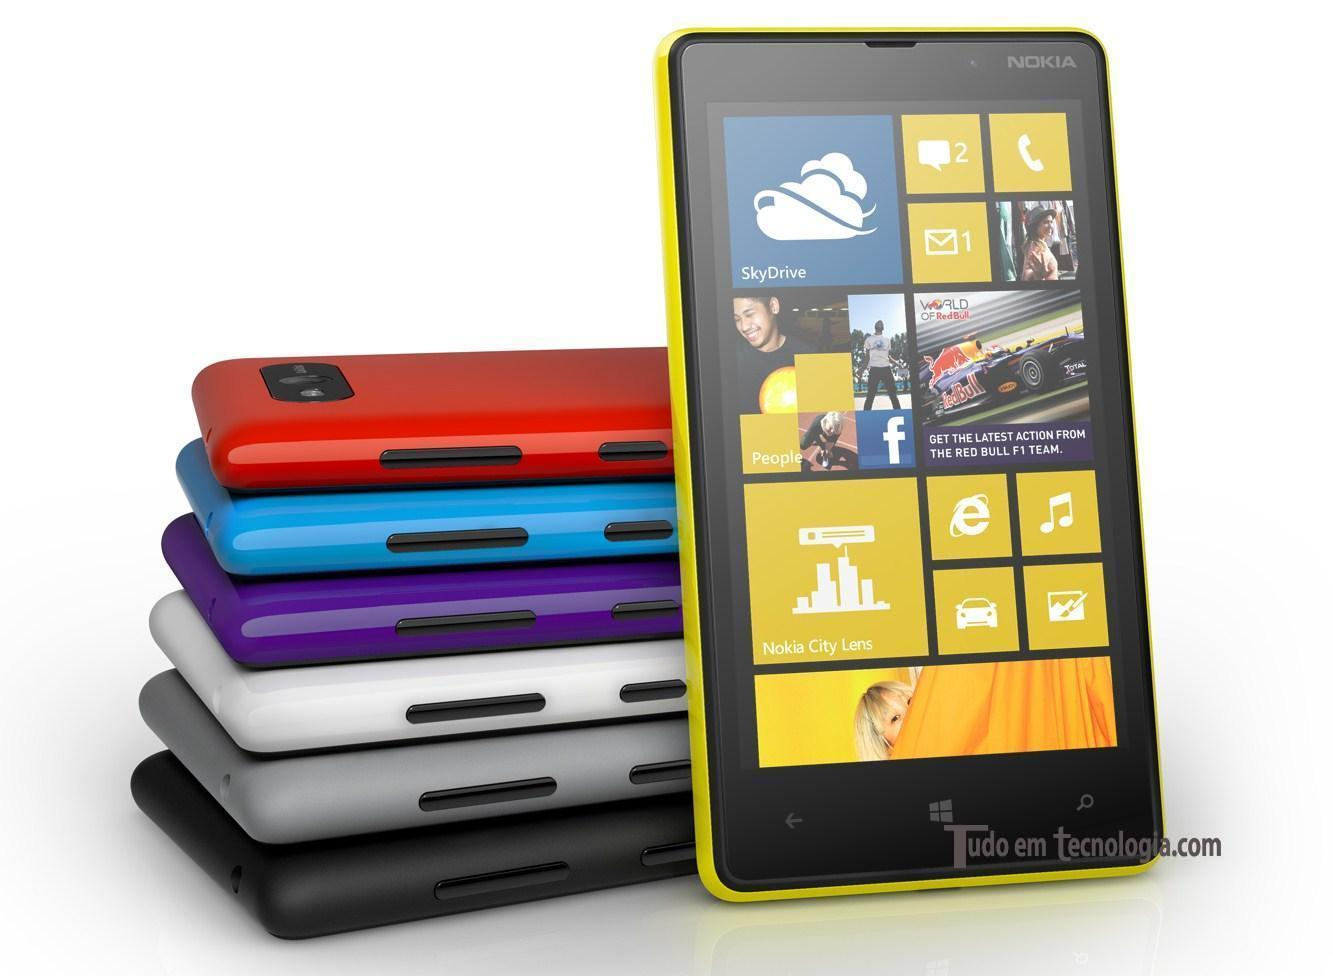 Novo Nokia Lumia 820 com Windows Phone 8.